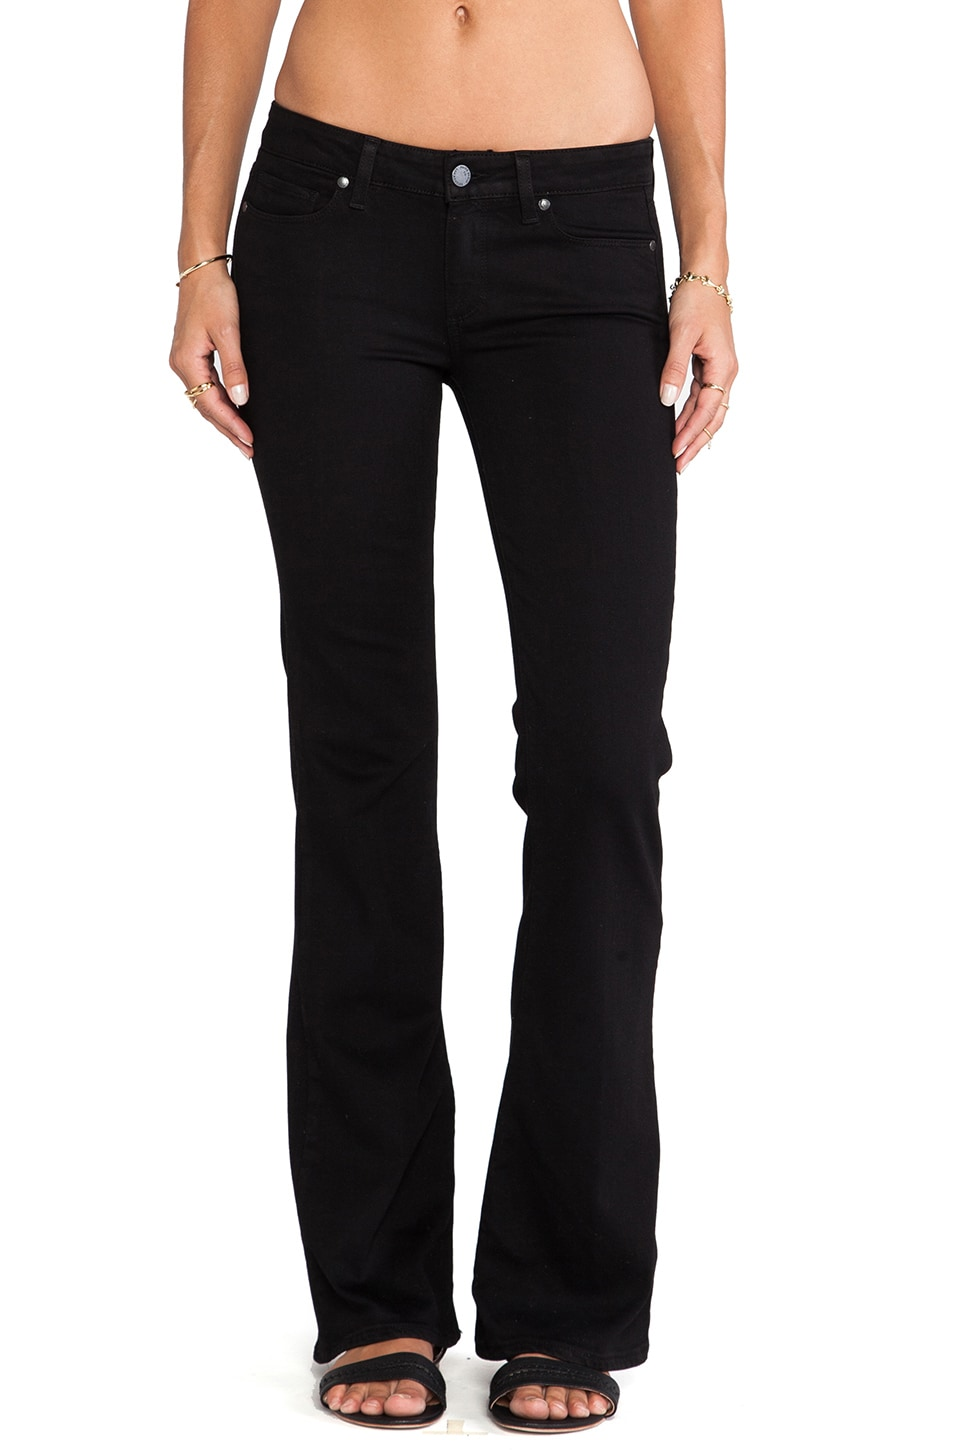 Paige Denim Skyline Boot in Black Shadow